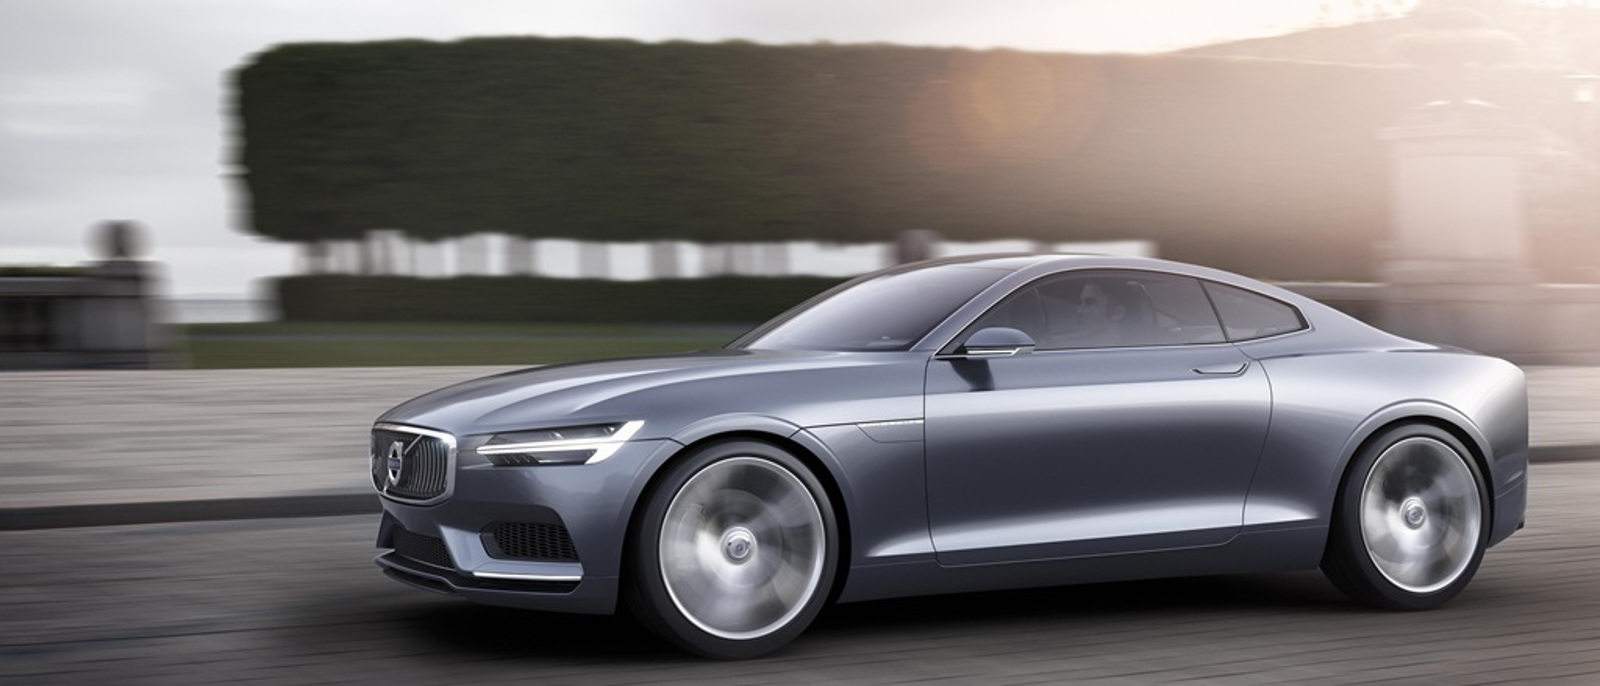 Volvo Concept Coupe side view